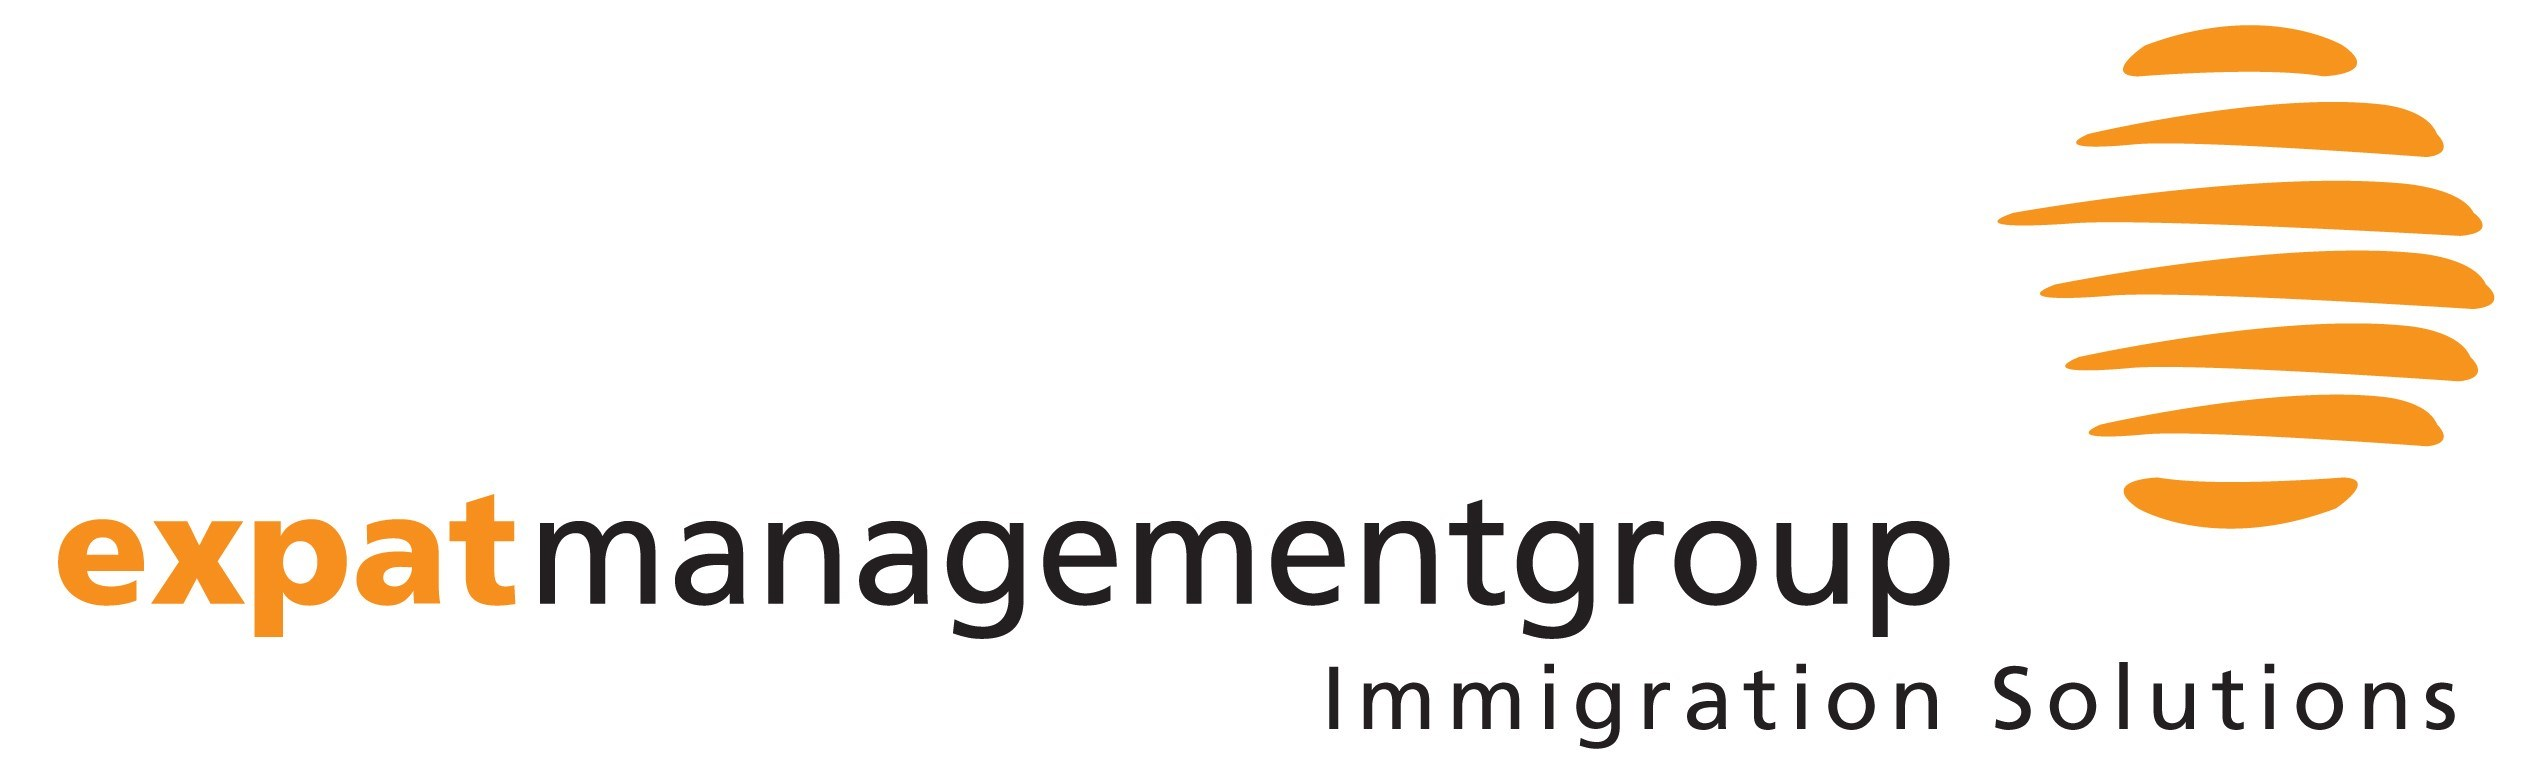 expat management group logo